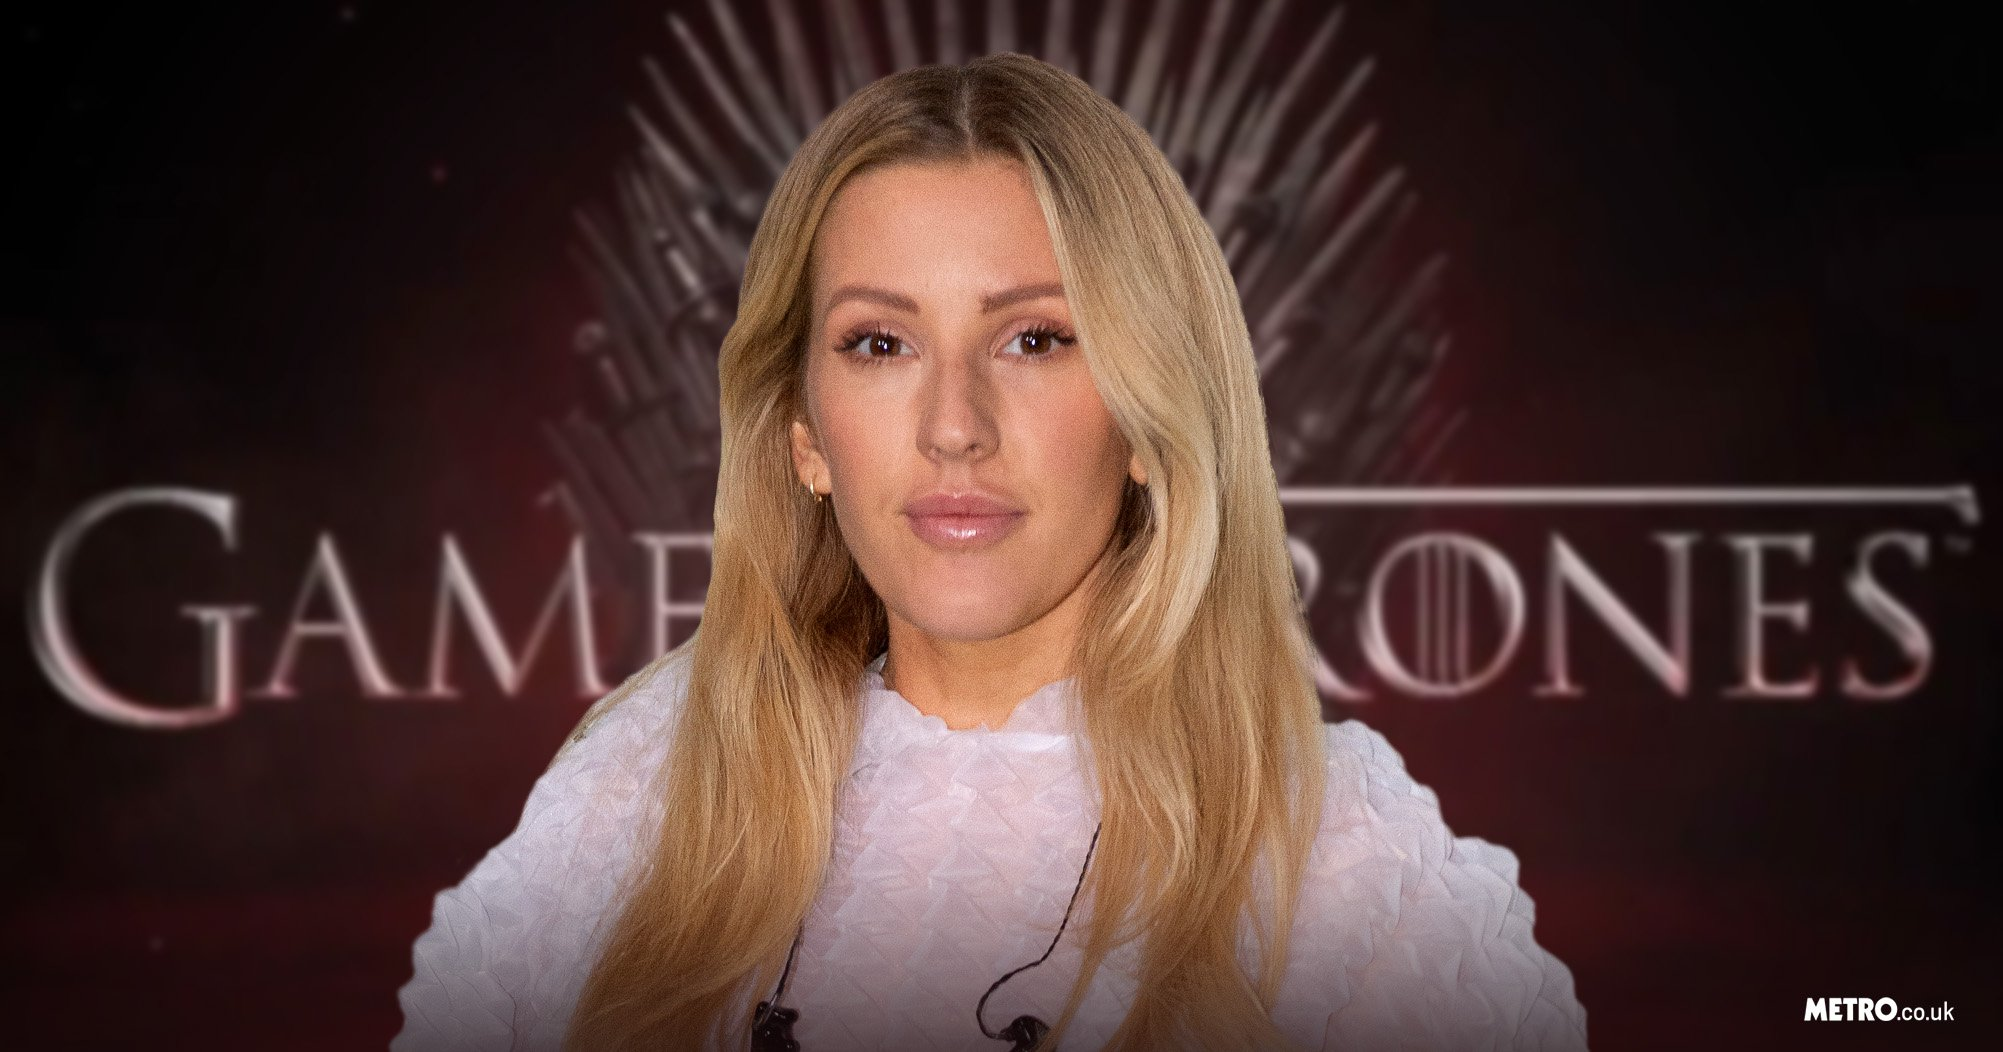 Ellie Goulding says Game Of Thrones bosses were 'obsessed' with her song Hollow Crown